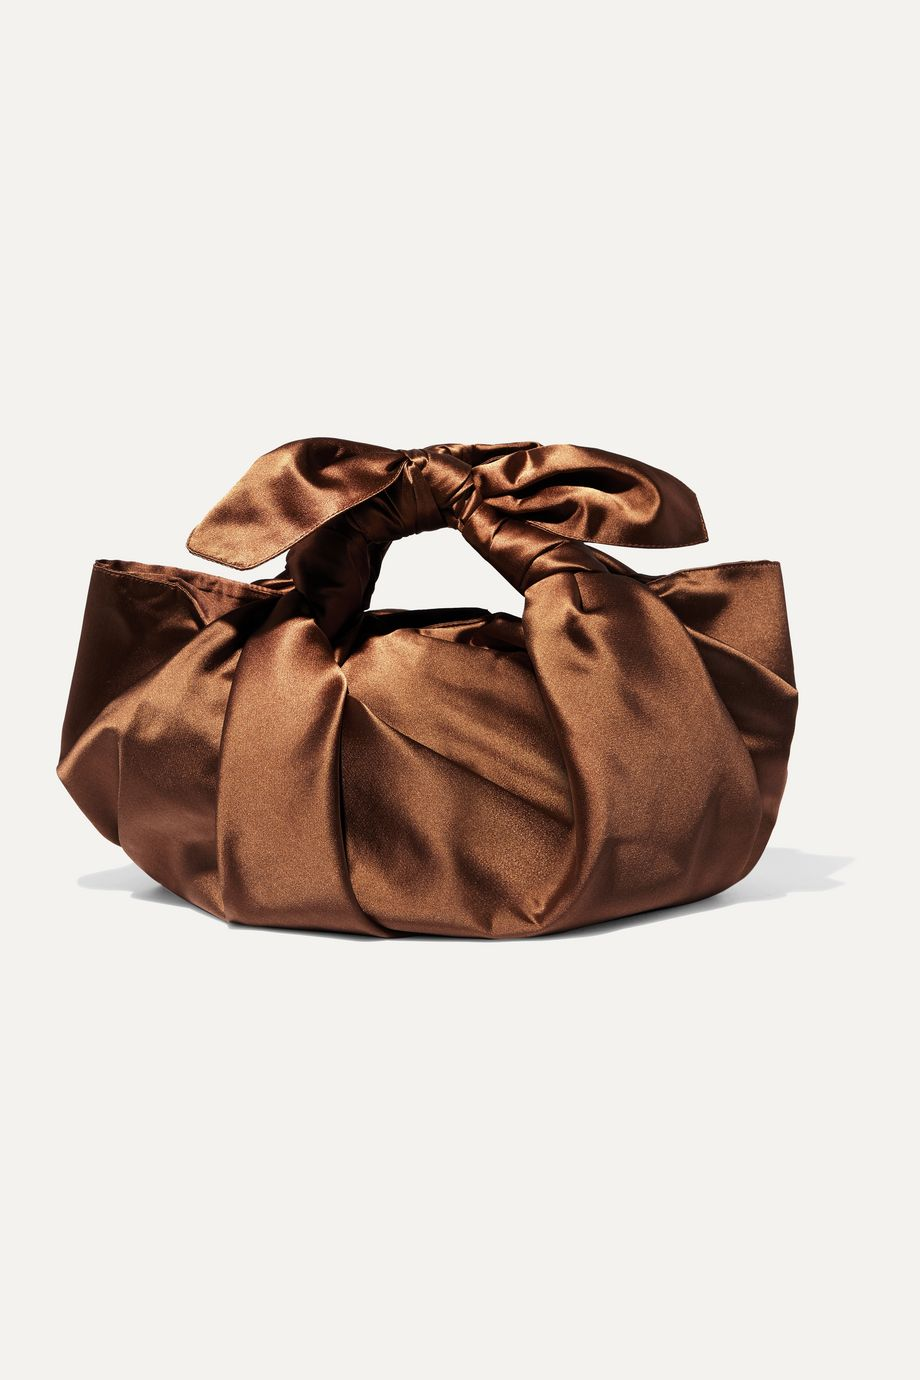 Emily Levine Notto knotted silk-satin tote